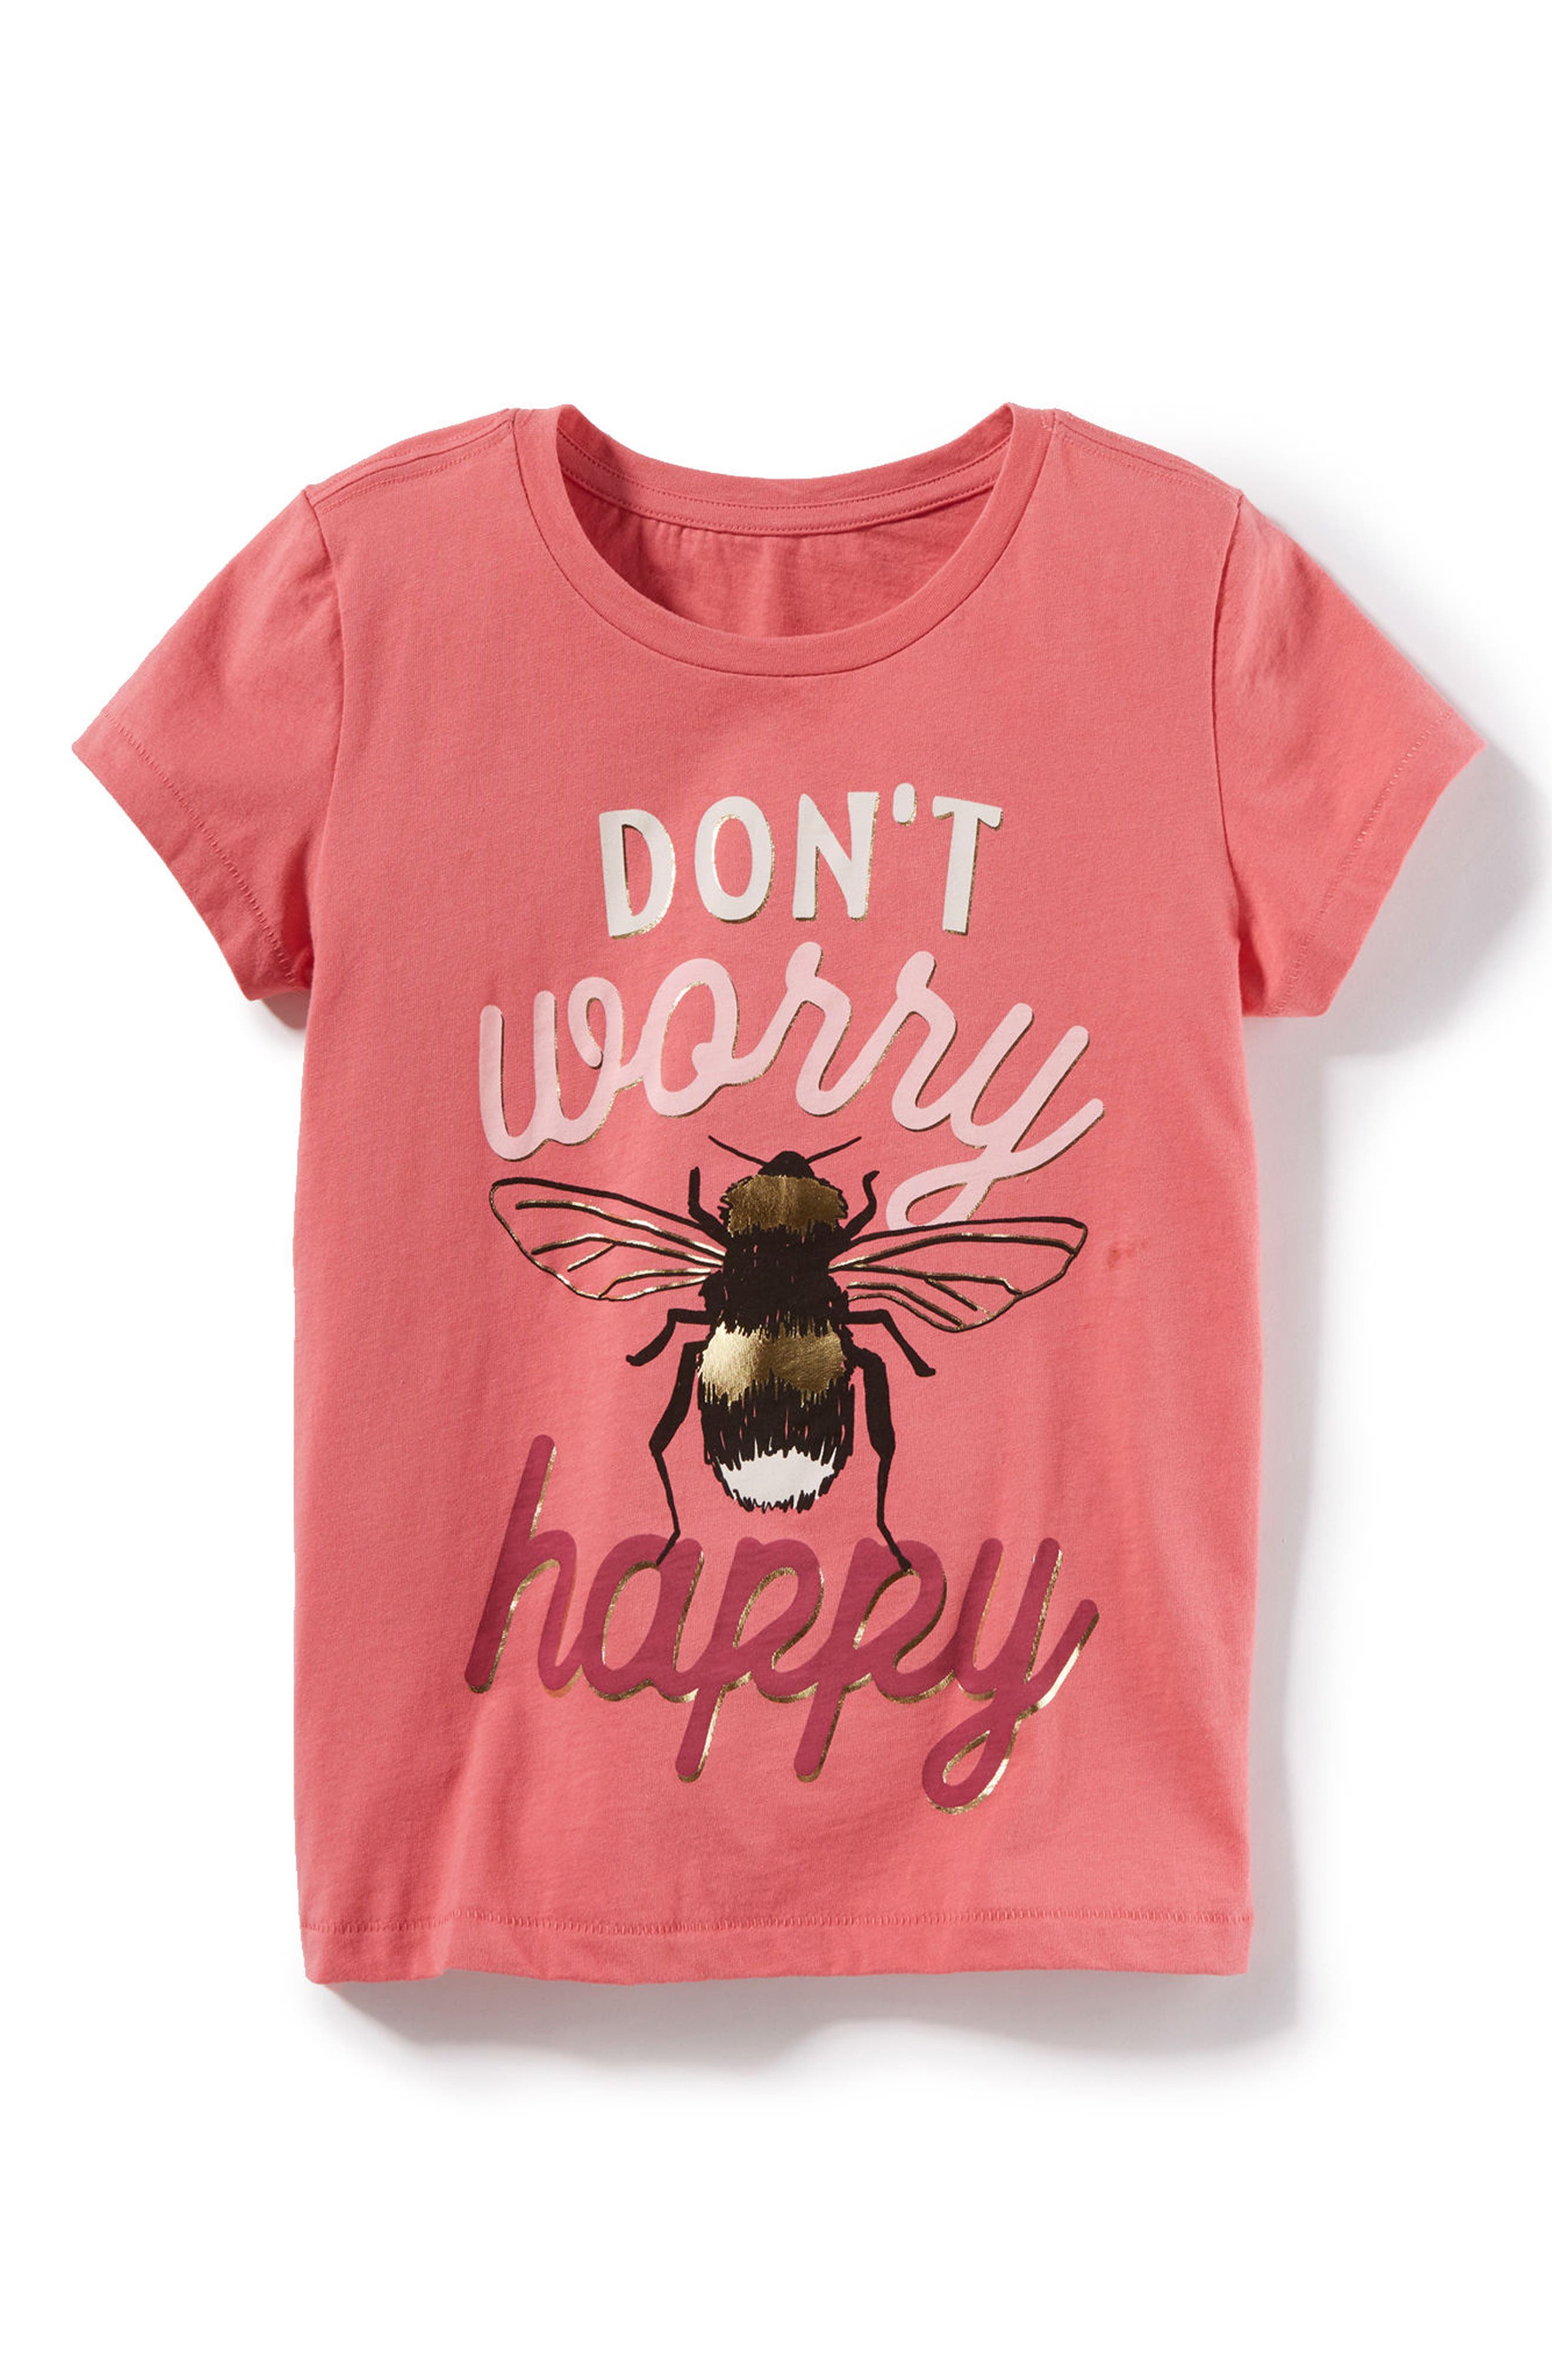 Don't Worry Graphic Tee,                             Main thumbnail 1, color,                             951